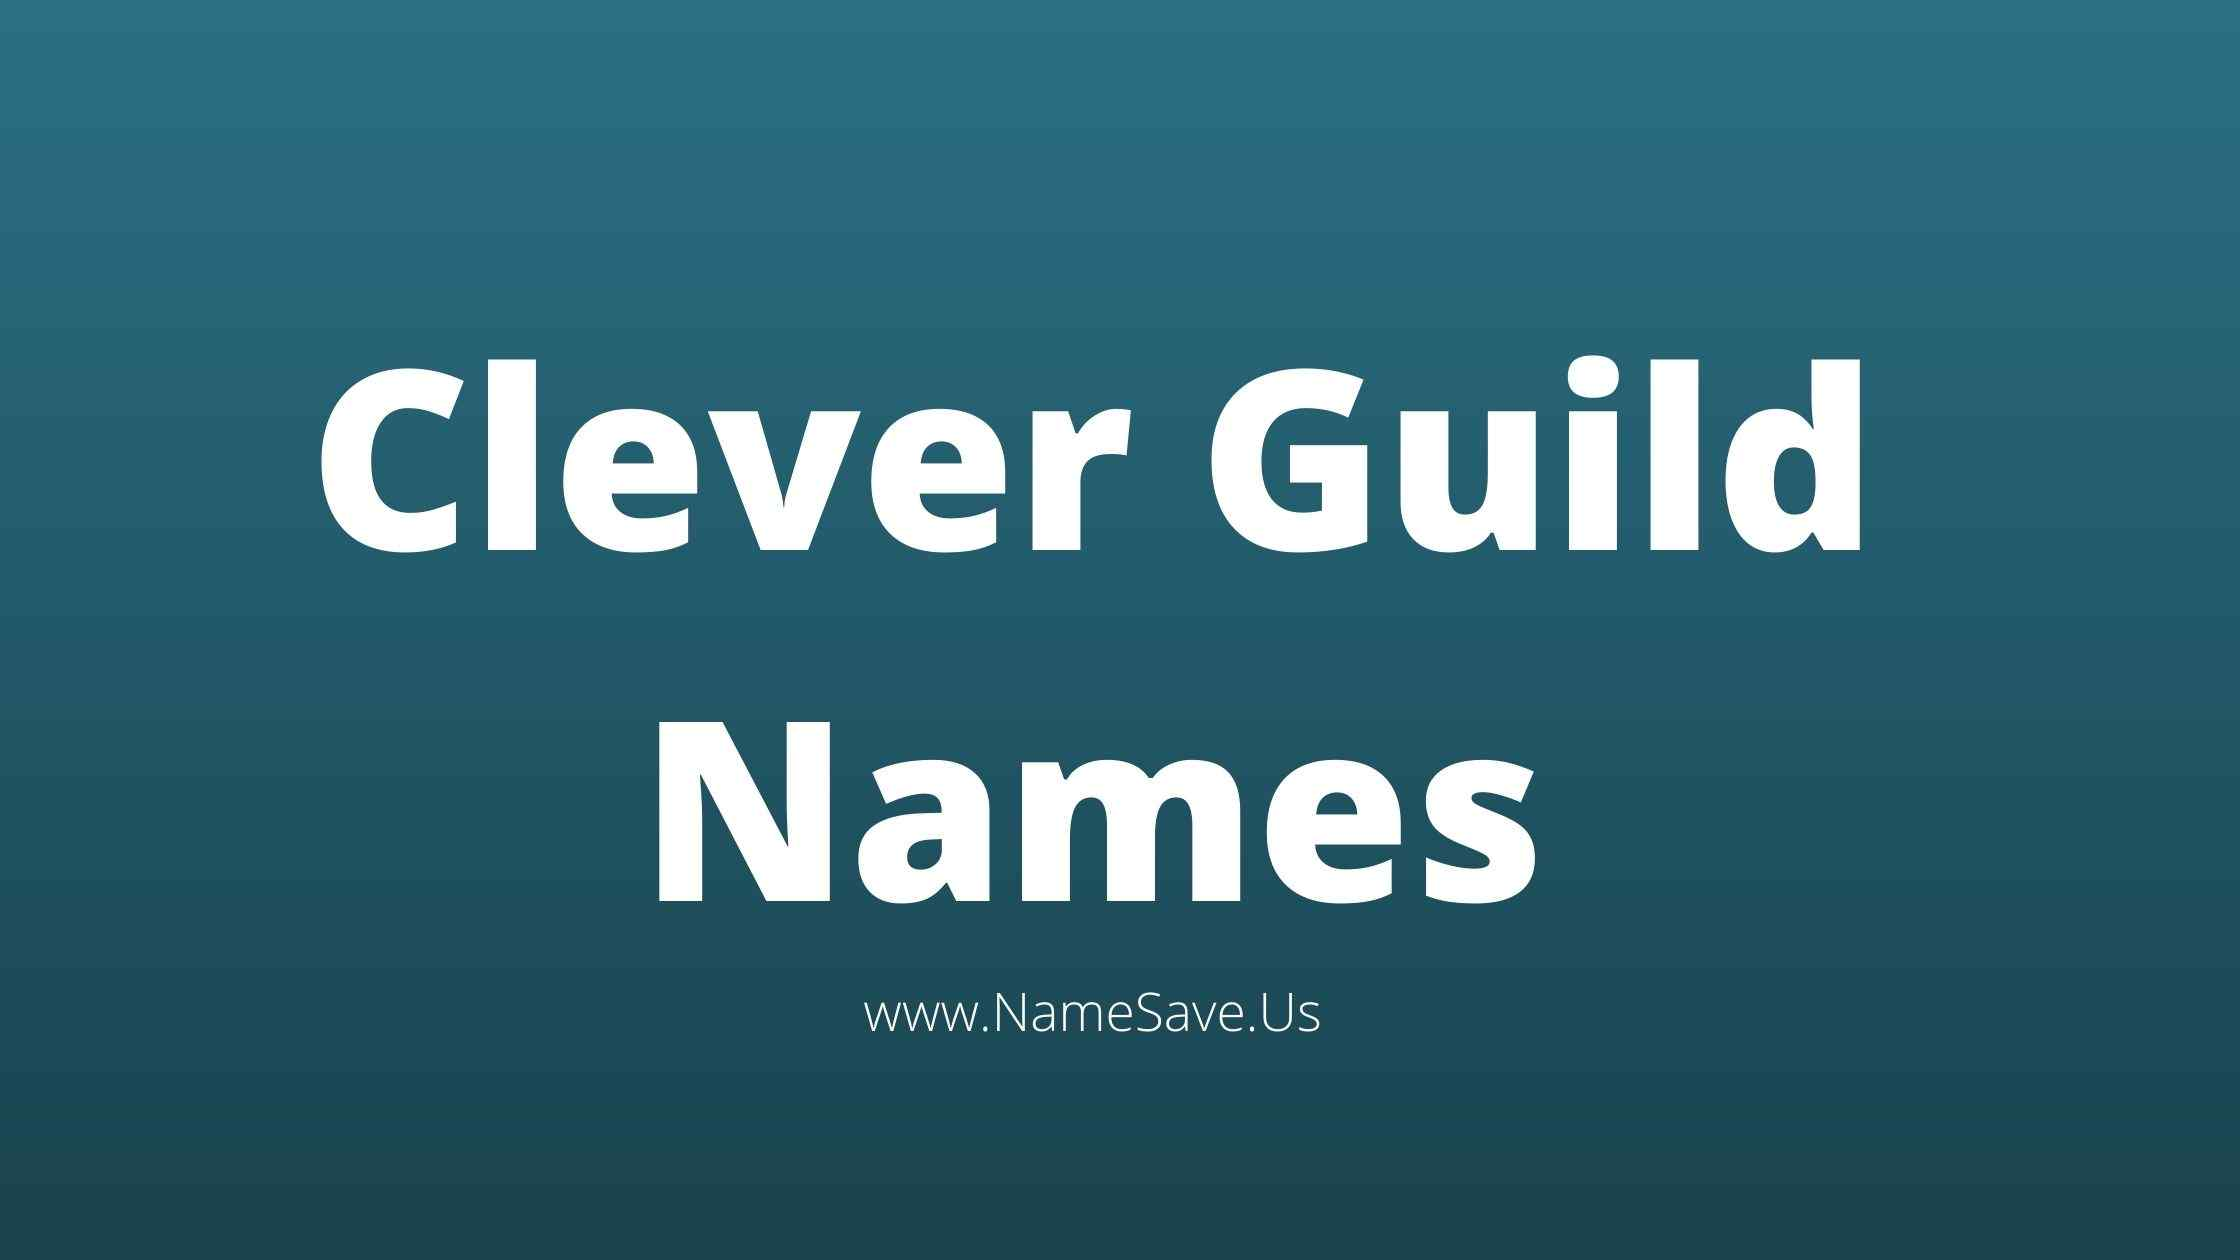 Clever Guild Names